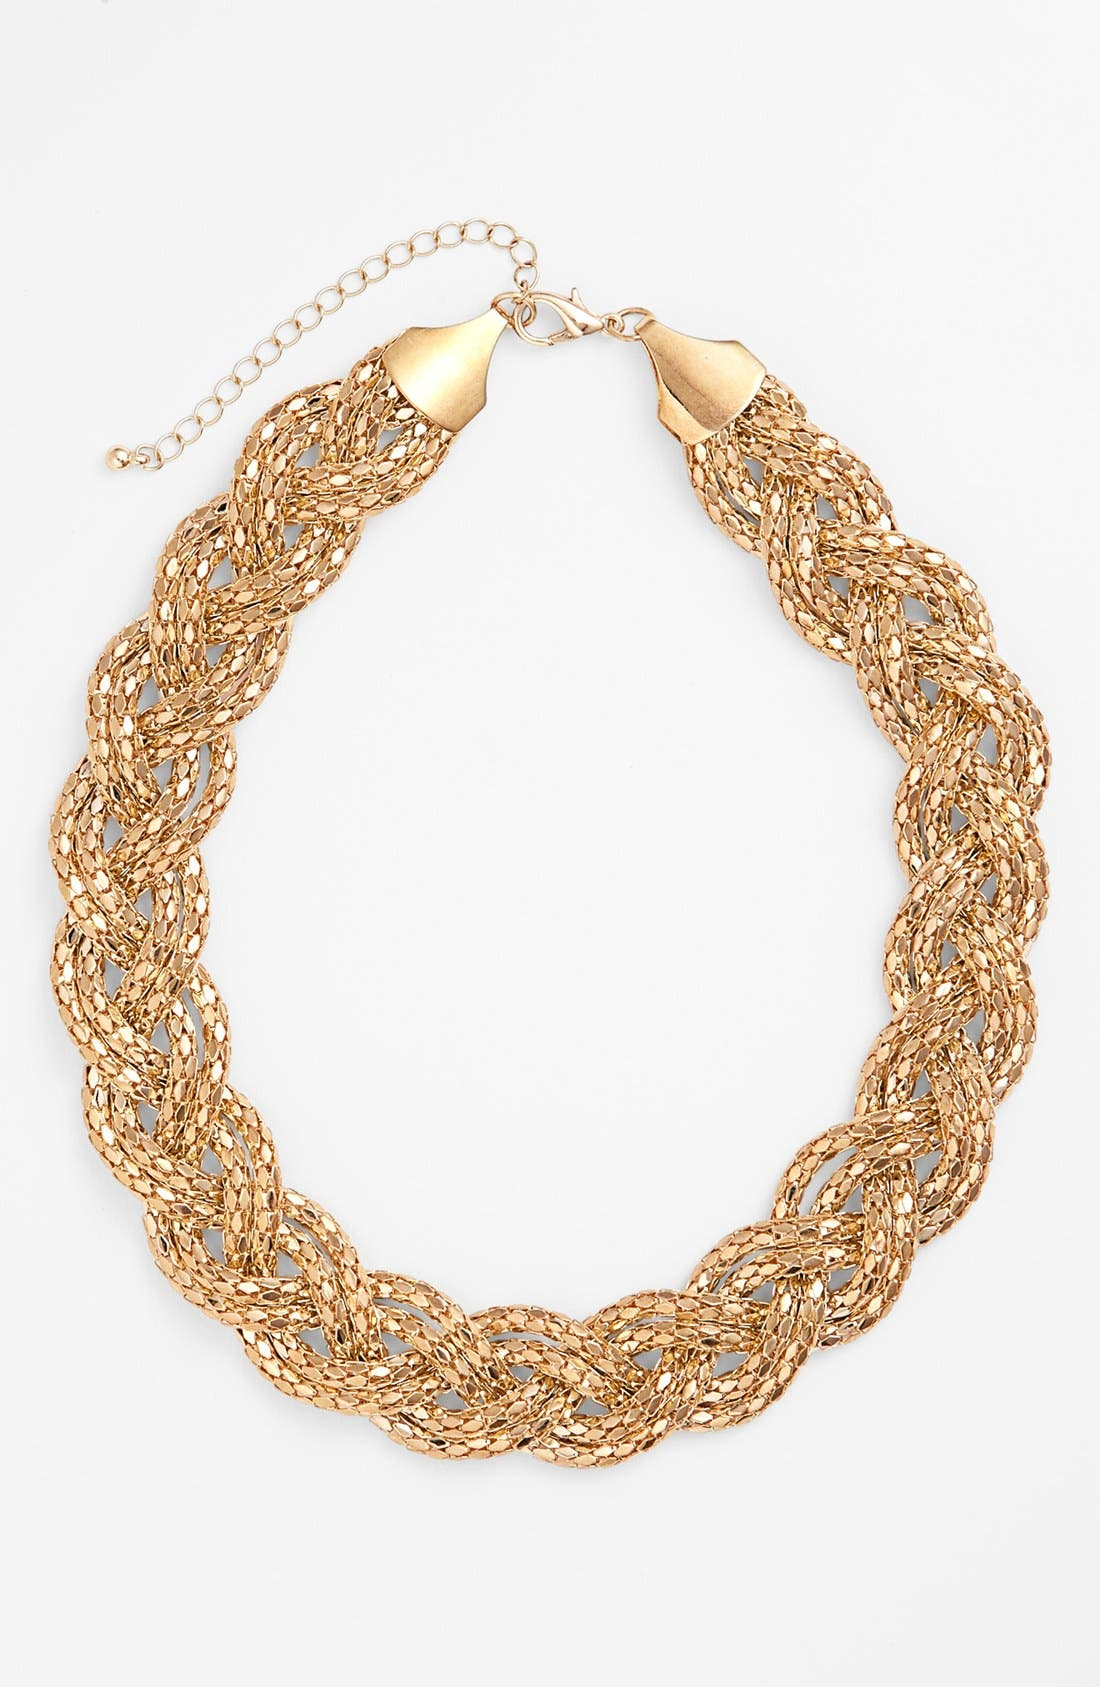 Alternate Image 1 Selected - Stephan & Co. Twisted Snake Chain Necklace (Juniors) (Online Only)